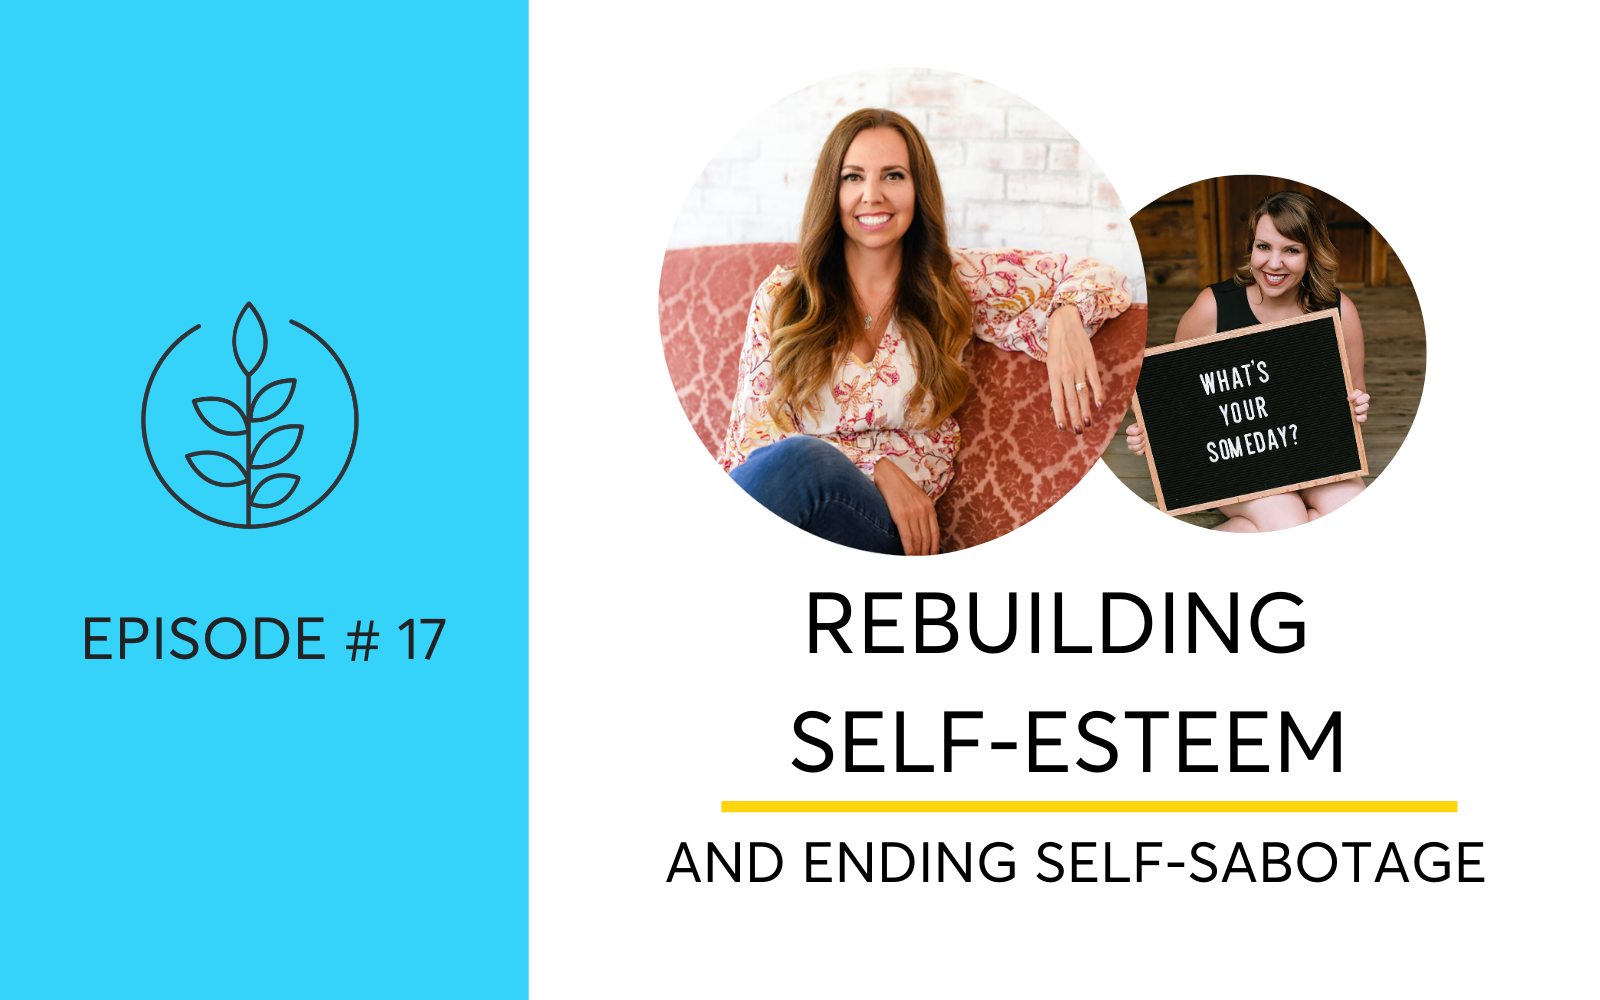 Ending Self-Sabotage by Building Self-Esteem